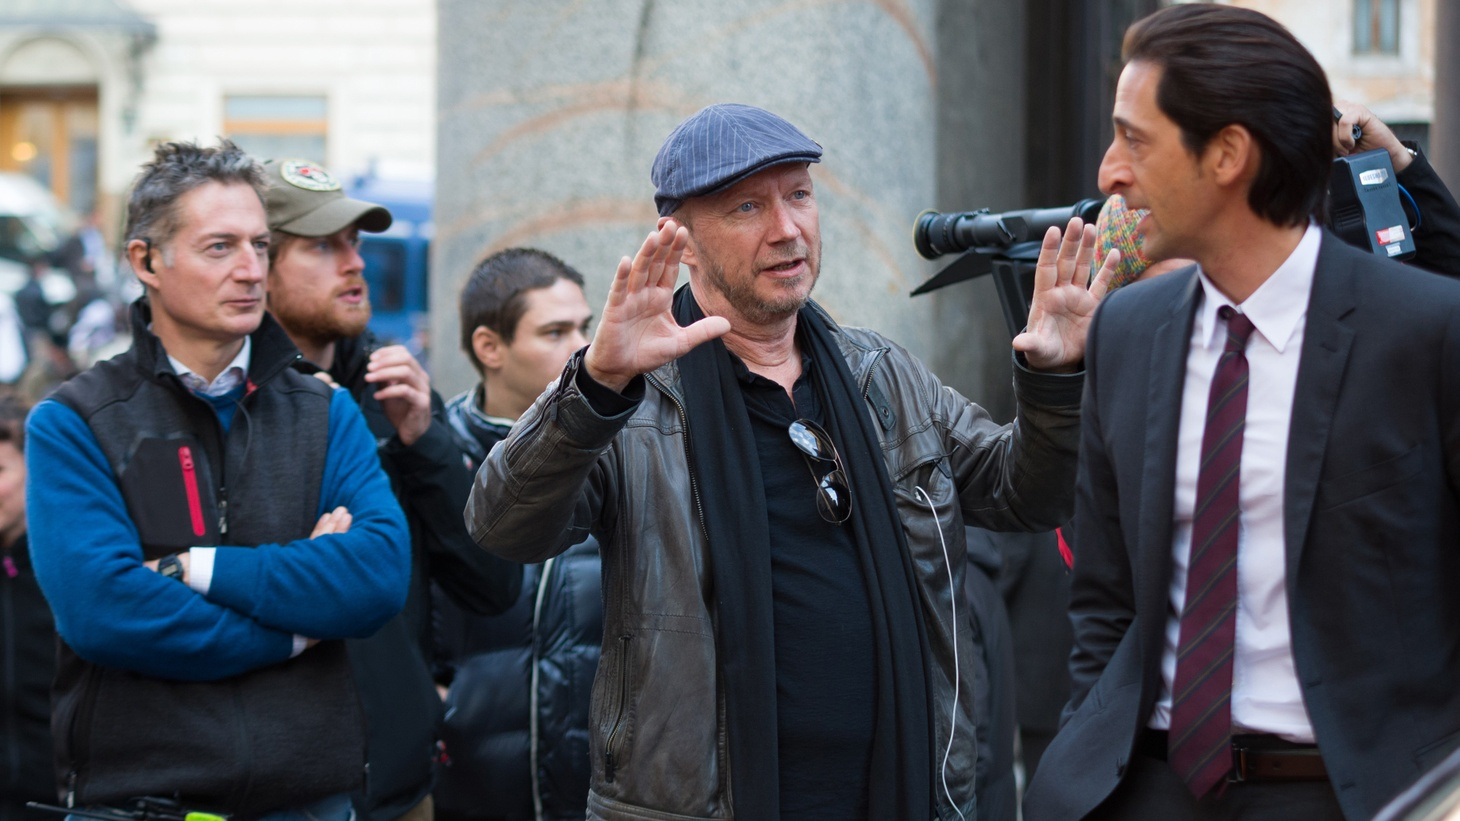 Screenwriter and director Paul Haggis on his new film Third Person, his first since his public break with the Church of Scientology.